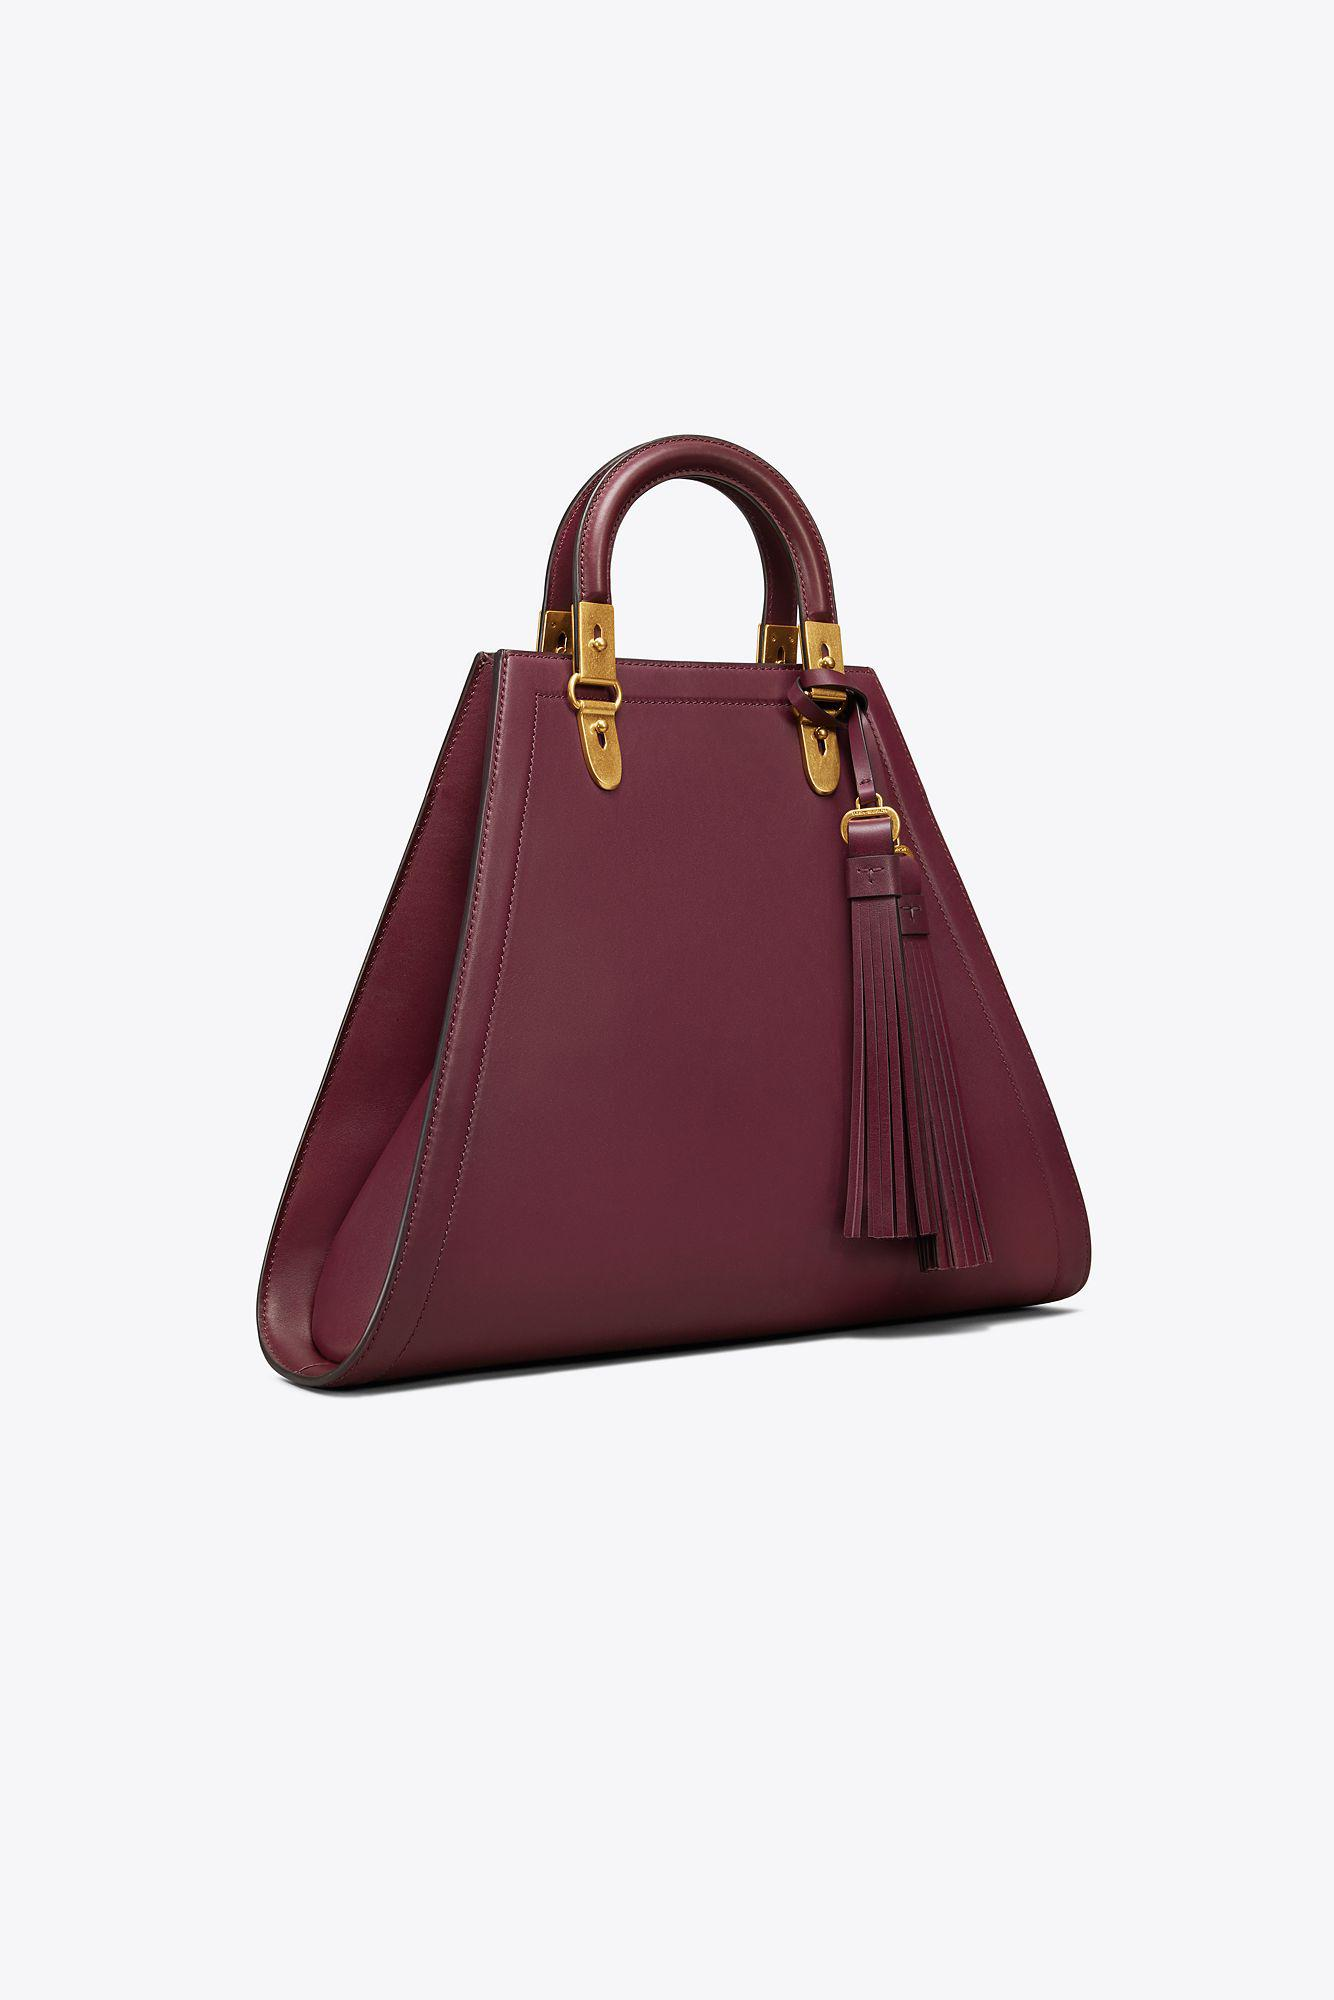 61b765560a Lyst - Tory Burch Woman Tasseled Leather Tote Grape in Red